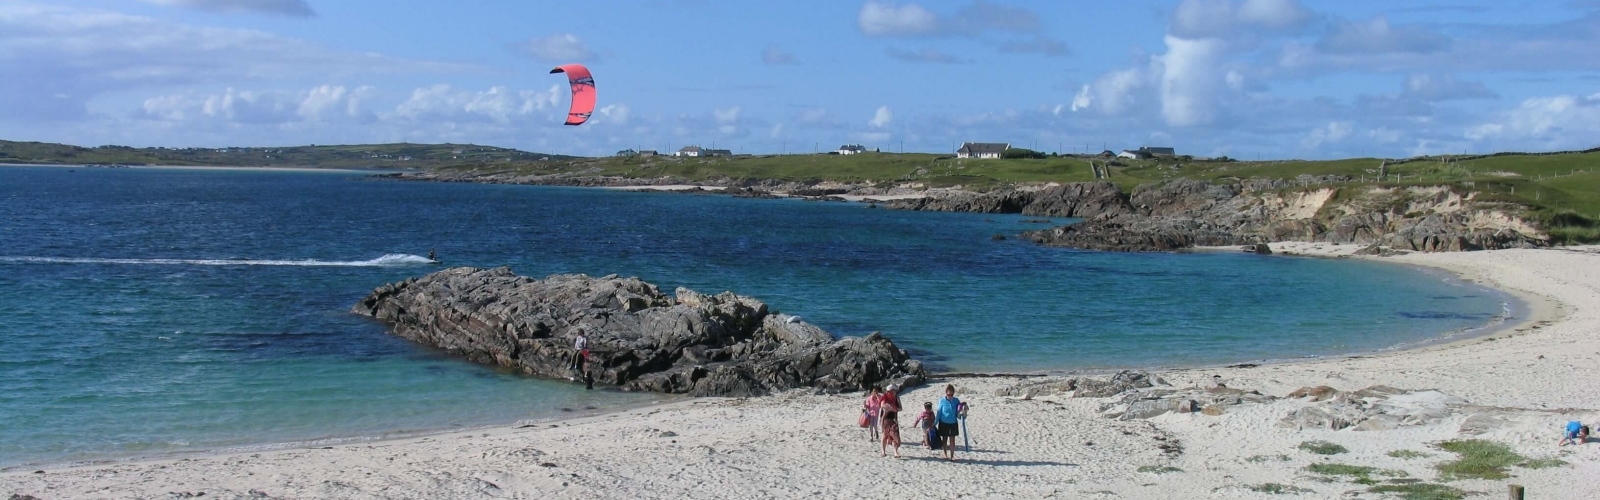 Kite Surfing on the Wild Atlantic Way